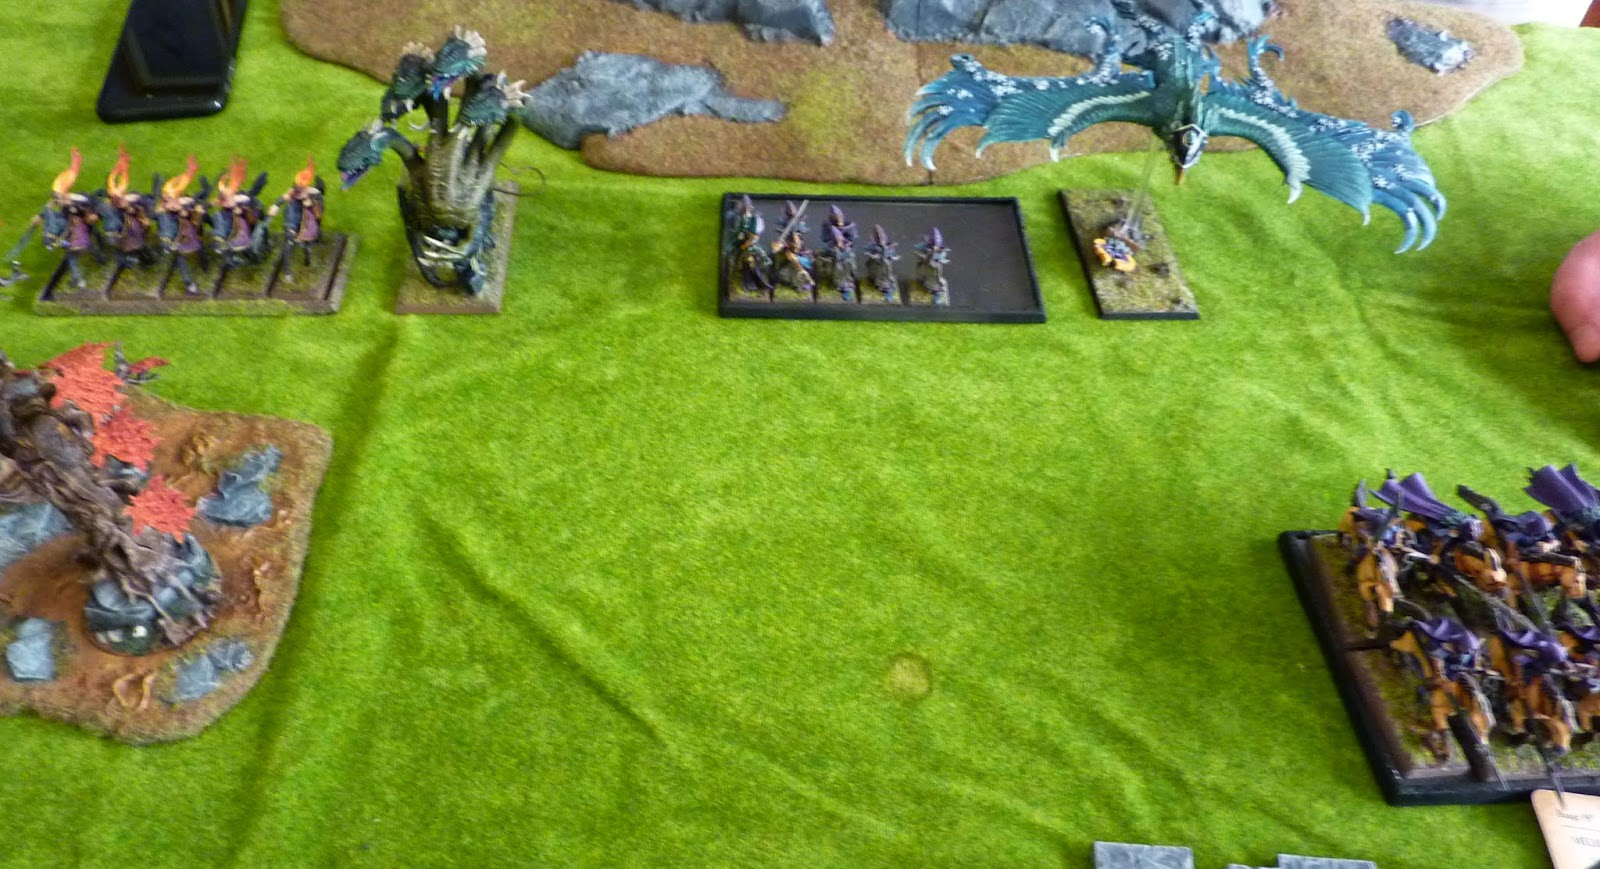 A Warhammer Fantasy Battle Report between Wood Elves and Host of the Eternity King.